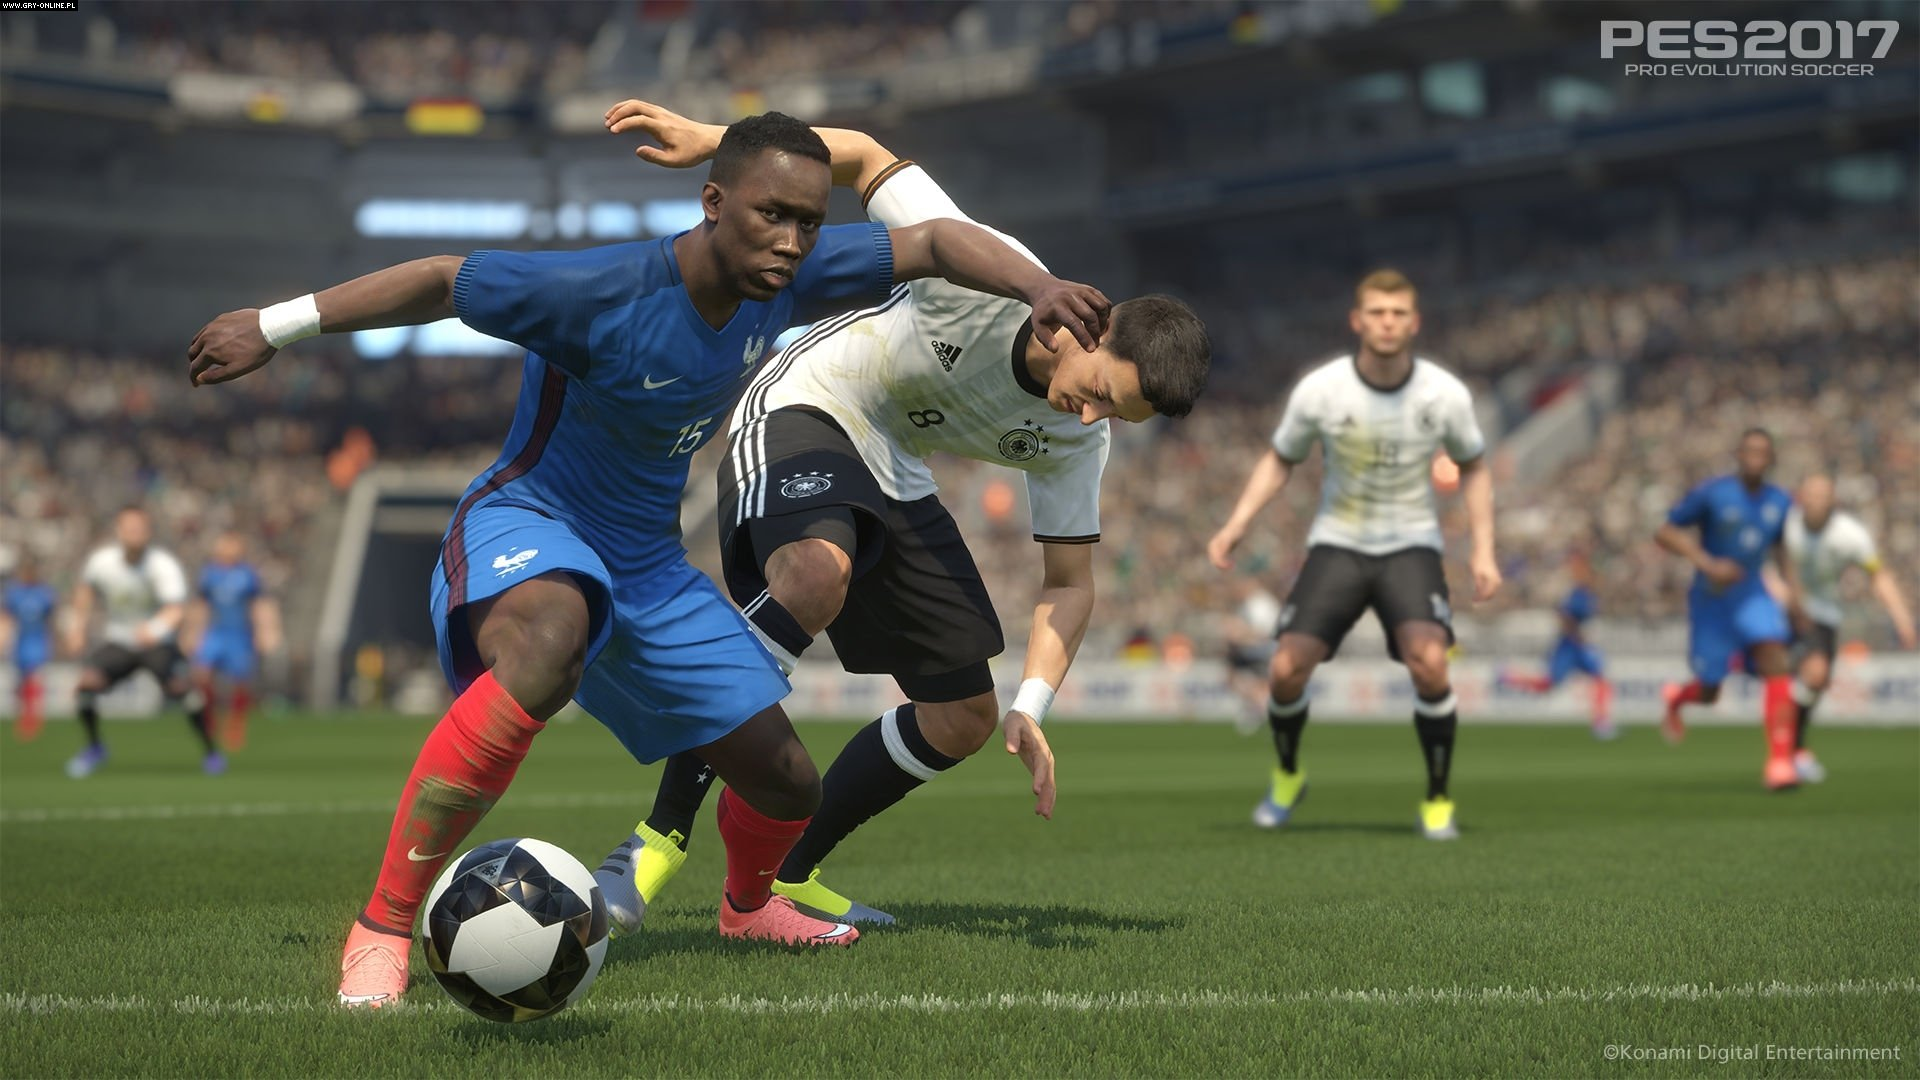 Pro Evolution Soccer 2017 PC, PS4, XONE Games Image 30/39, Konami